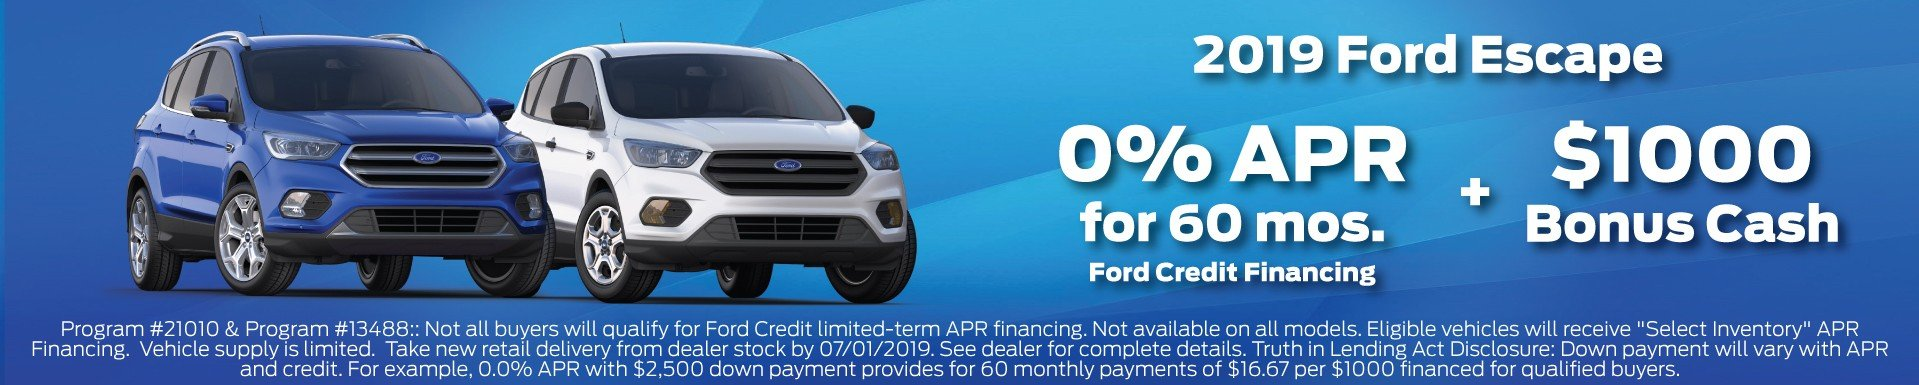 2019 Ford Escape Offer 4-2019